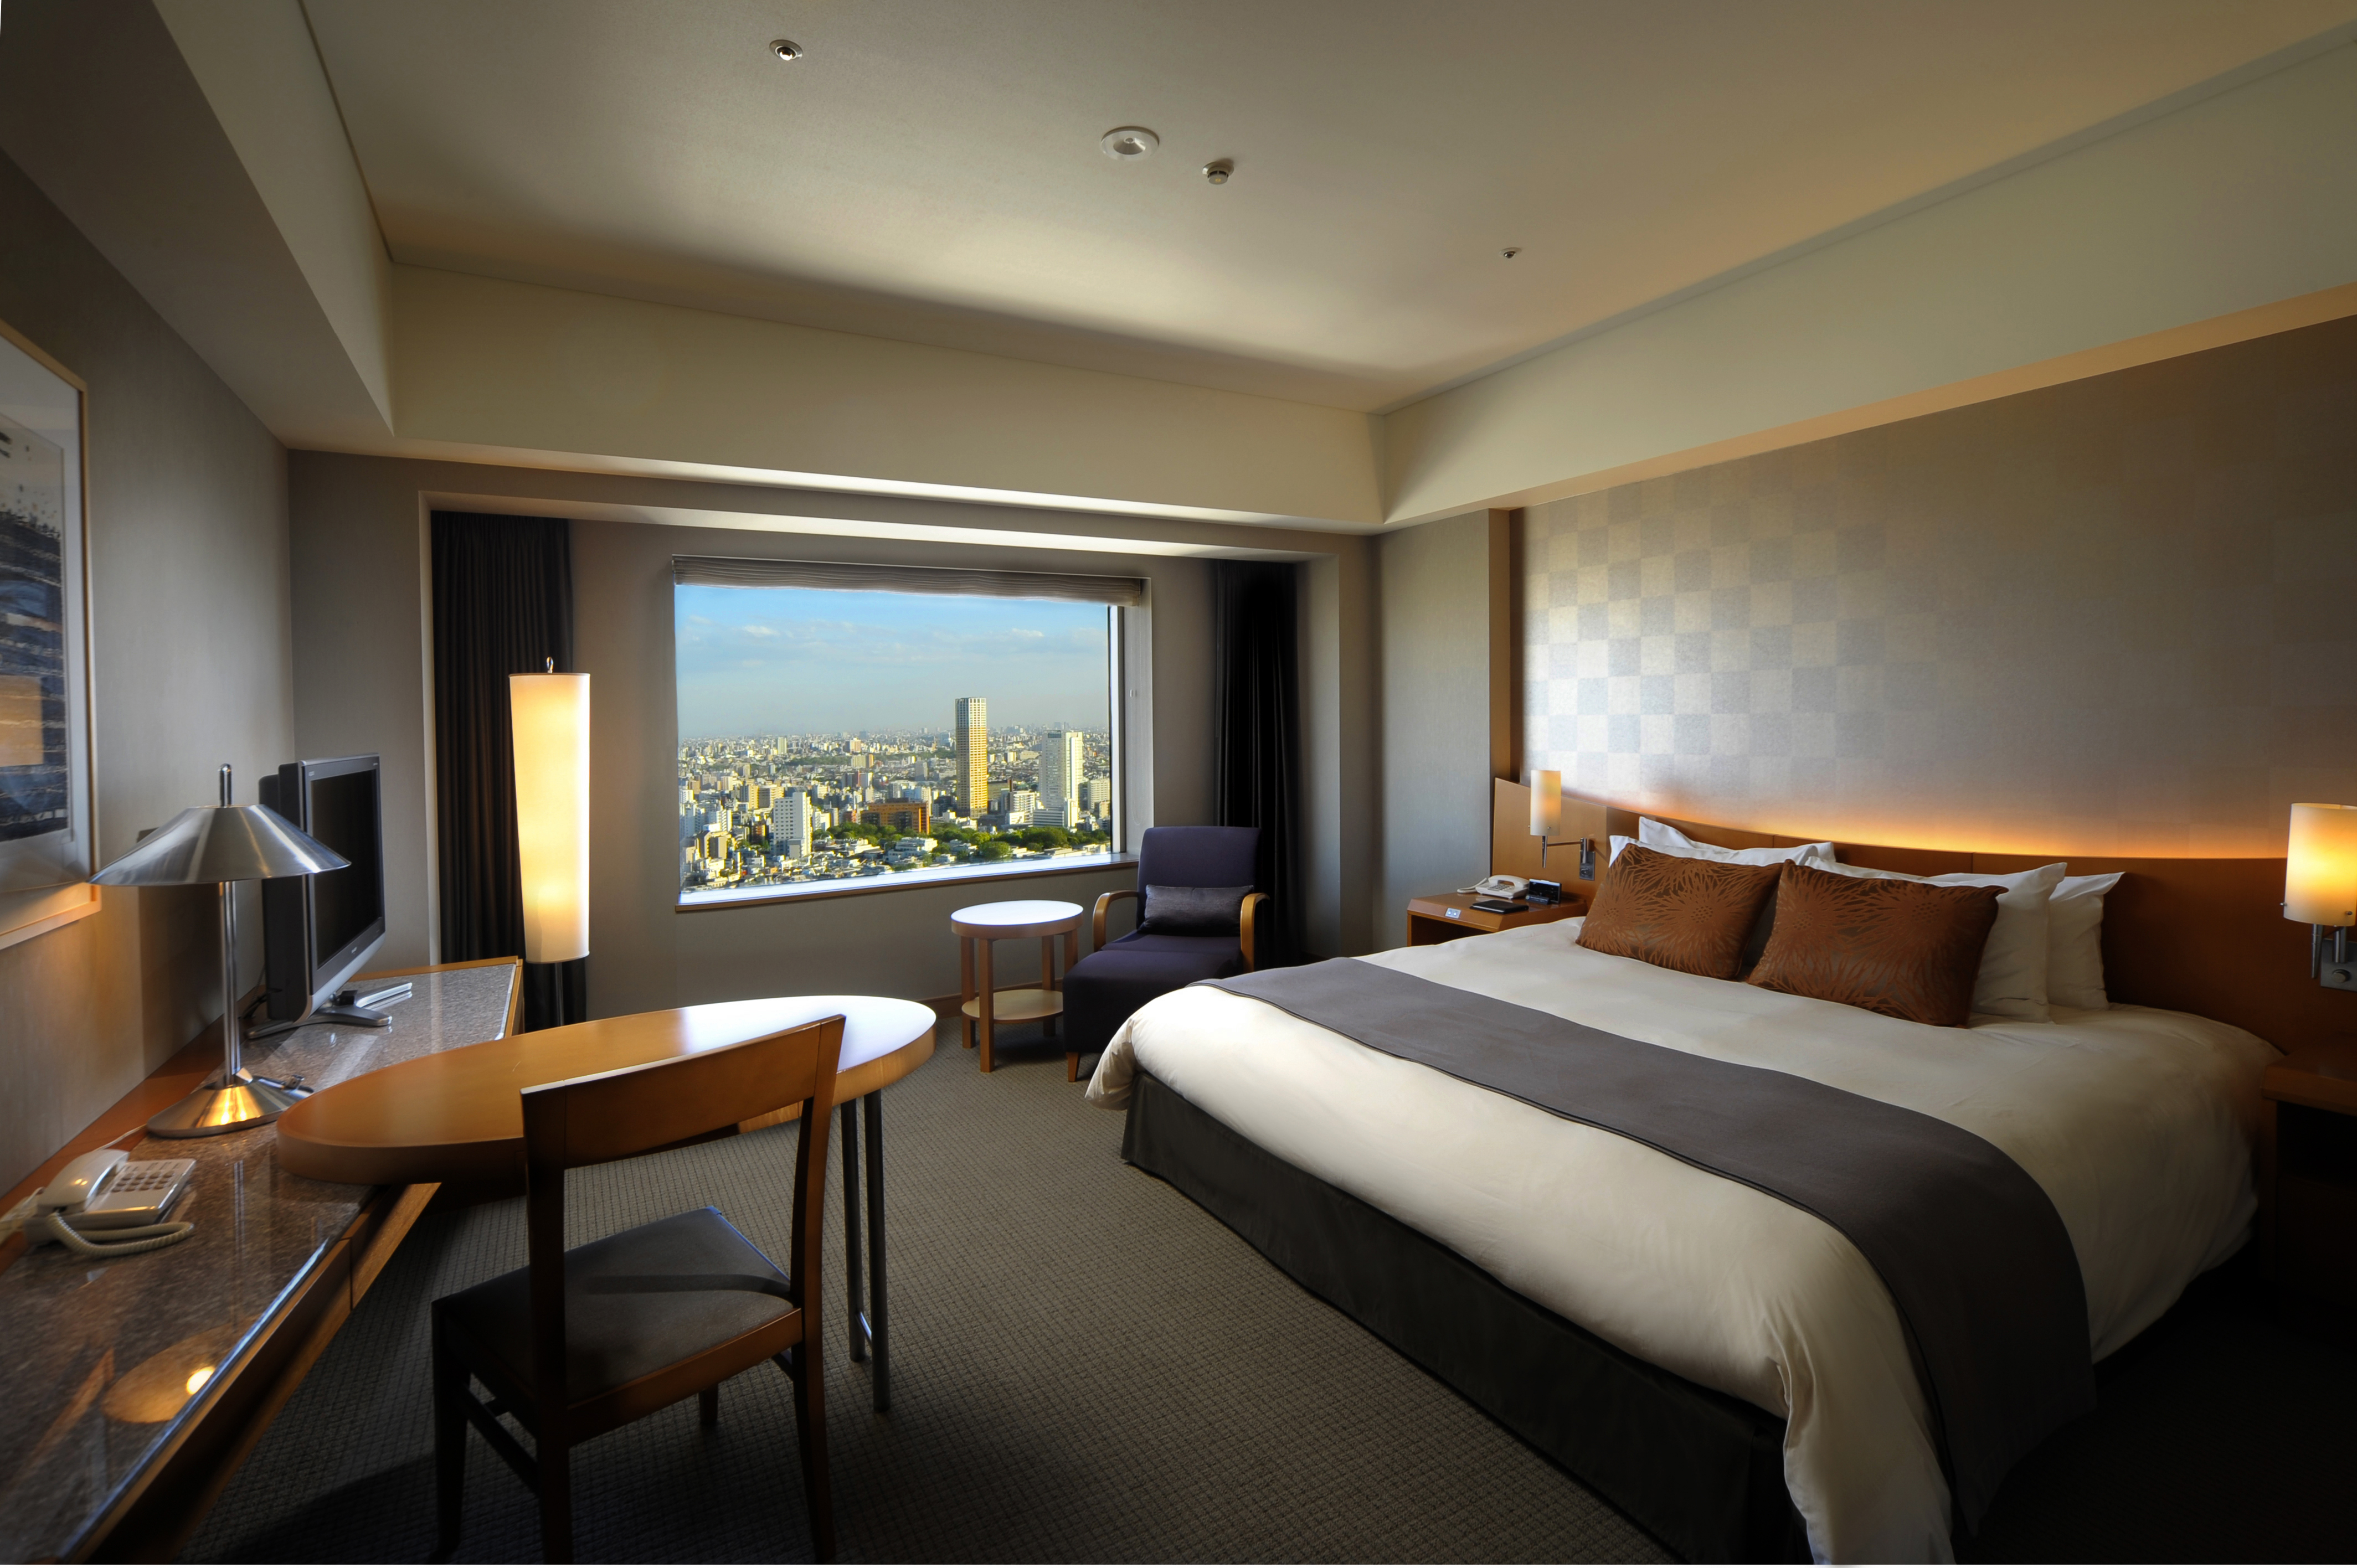 Luxurious guest room with a view at the Cerulean Tower Tokyu Hotel, a new LWH Hotels member property in Tokyo, Japan. (Photo: Business Wire)